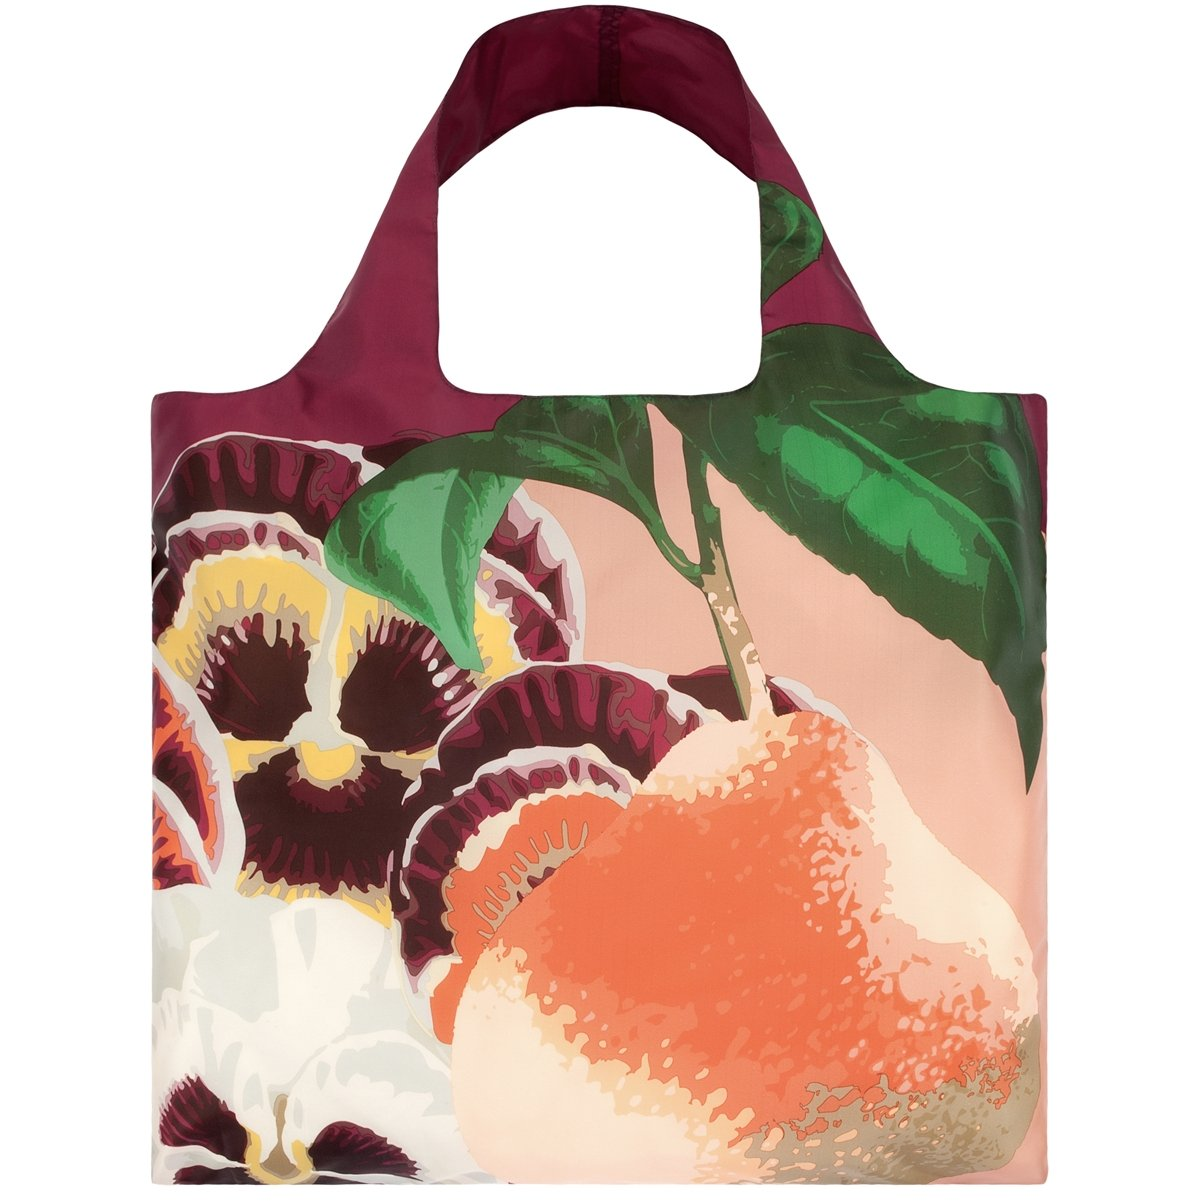 LOQI Botany Collection Pouch, Set of 4 Reusable Bags